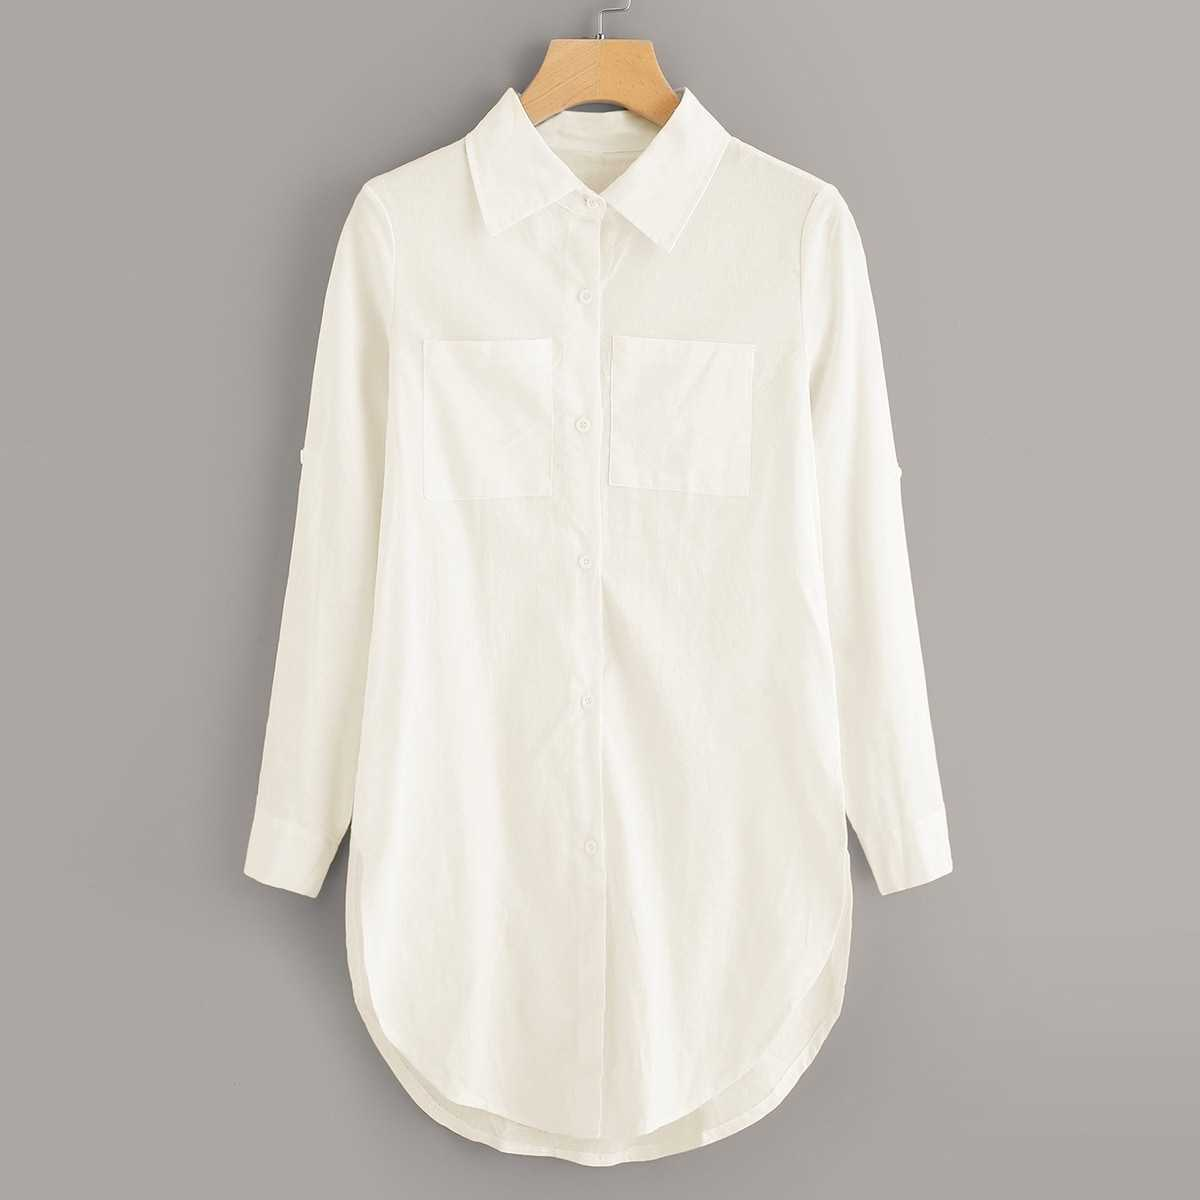 Patch Pocket Curved Hem Longline Shirt in White by ROMWE on GOOFASH